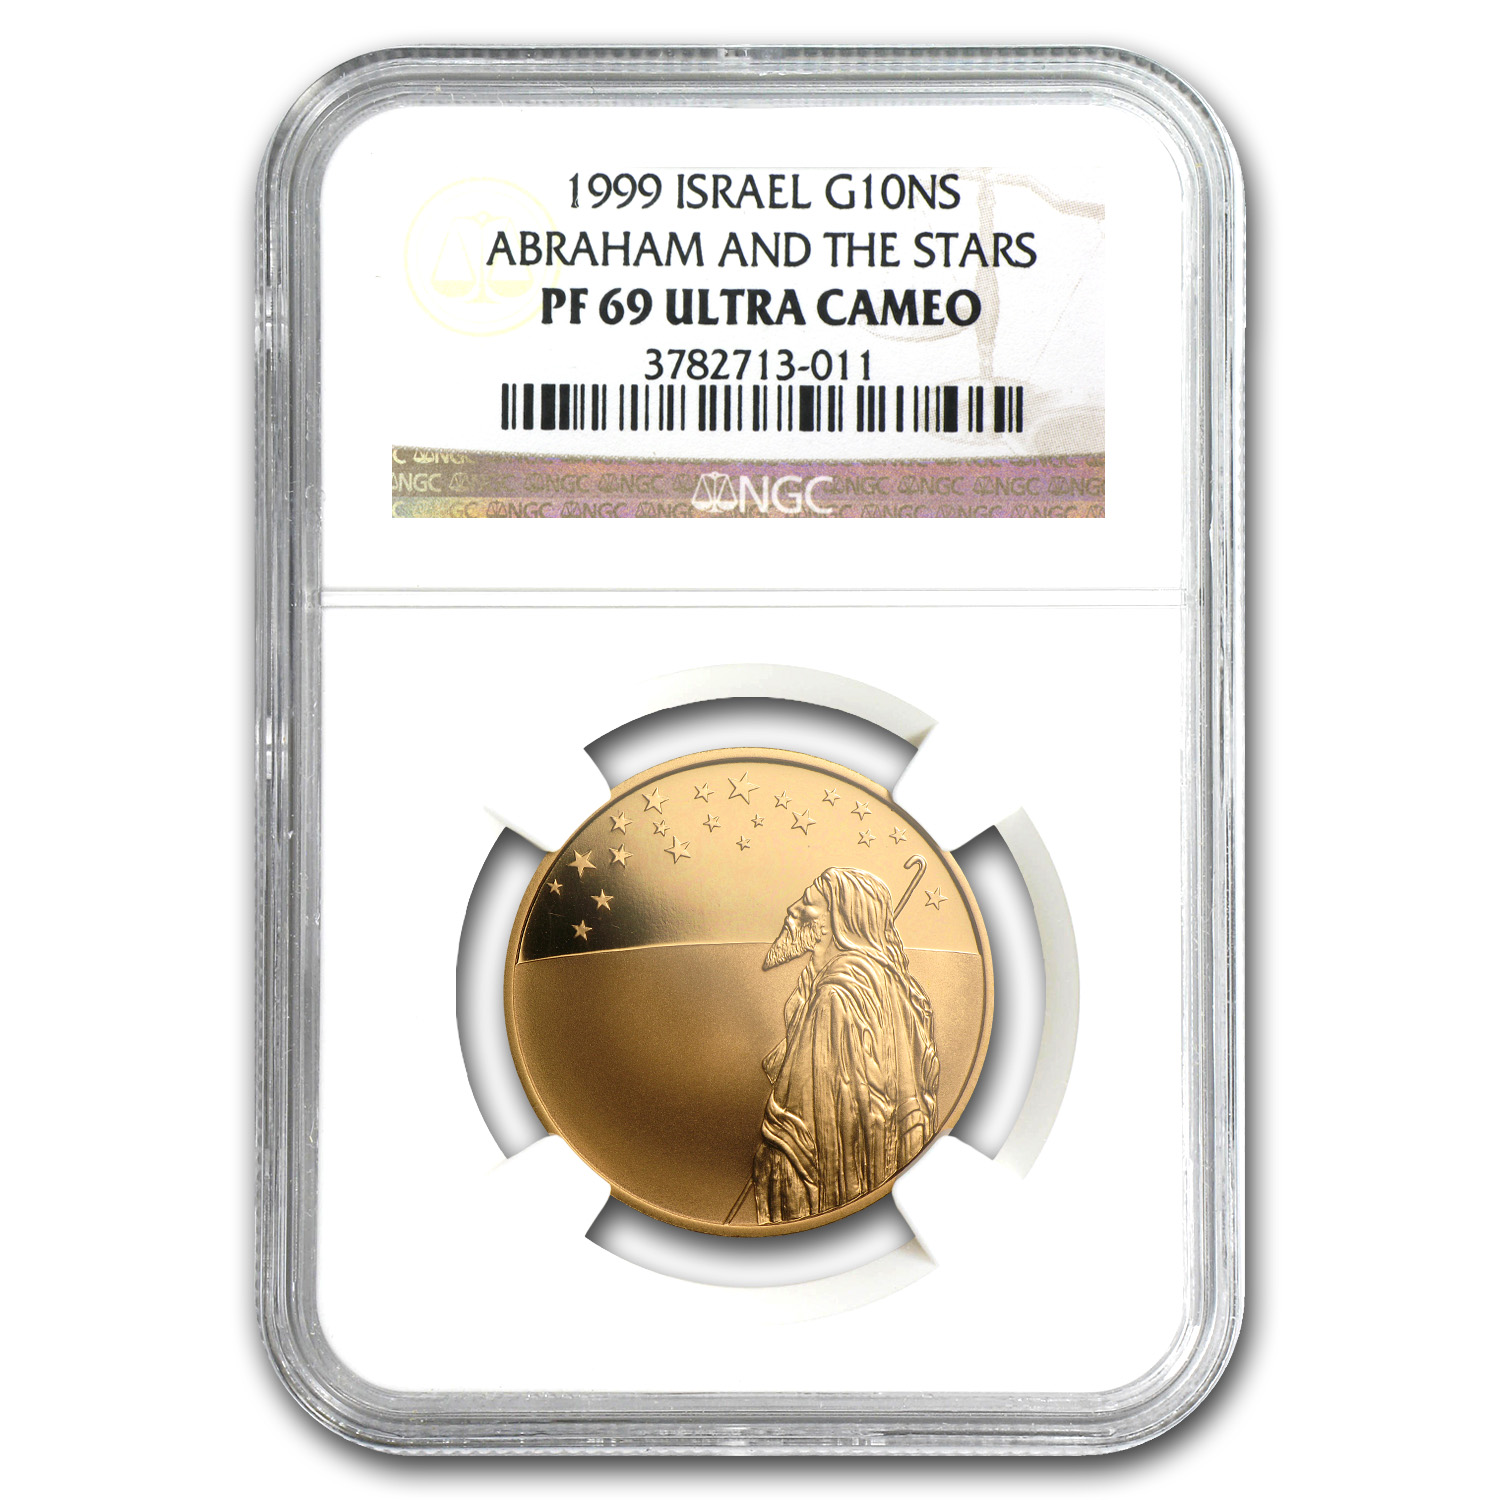 1999 Israel 1/2 oz Proof Gold Abraham and the Stars PF-69 NGC